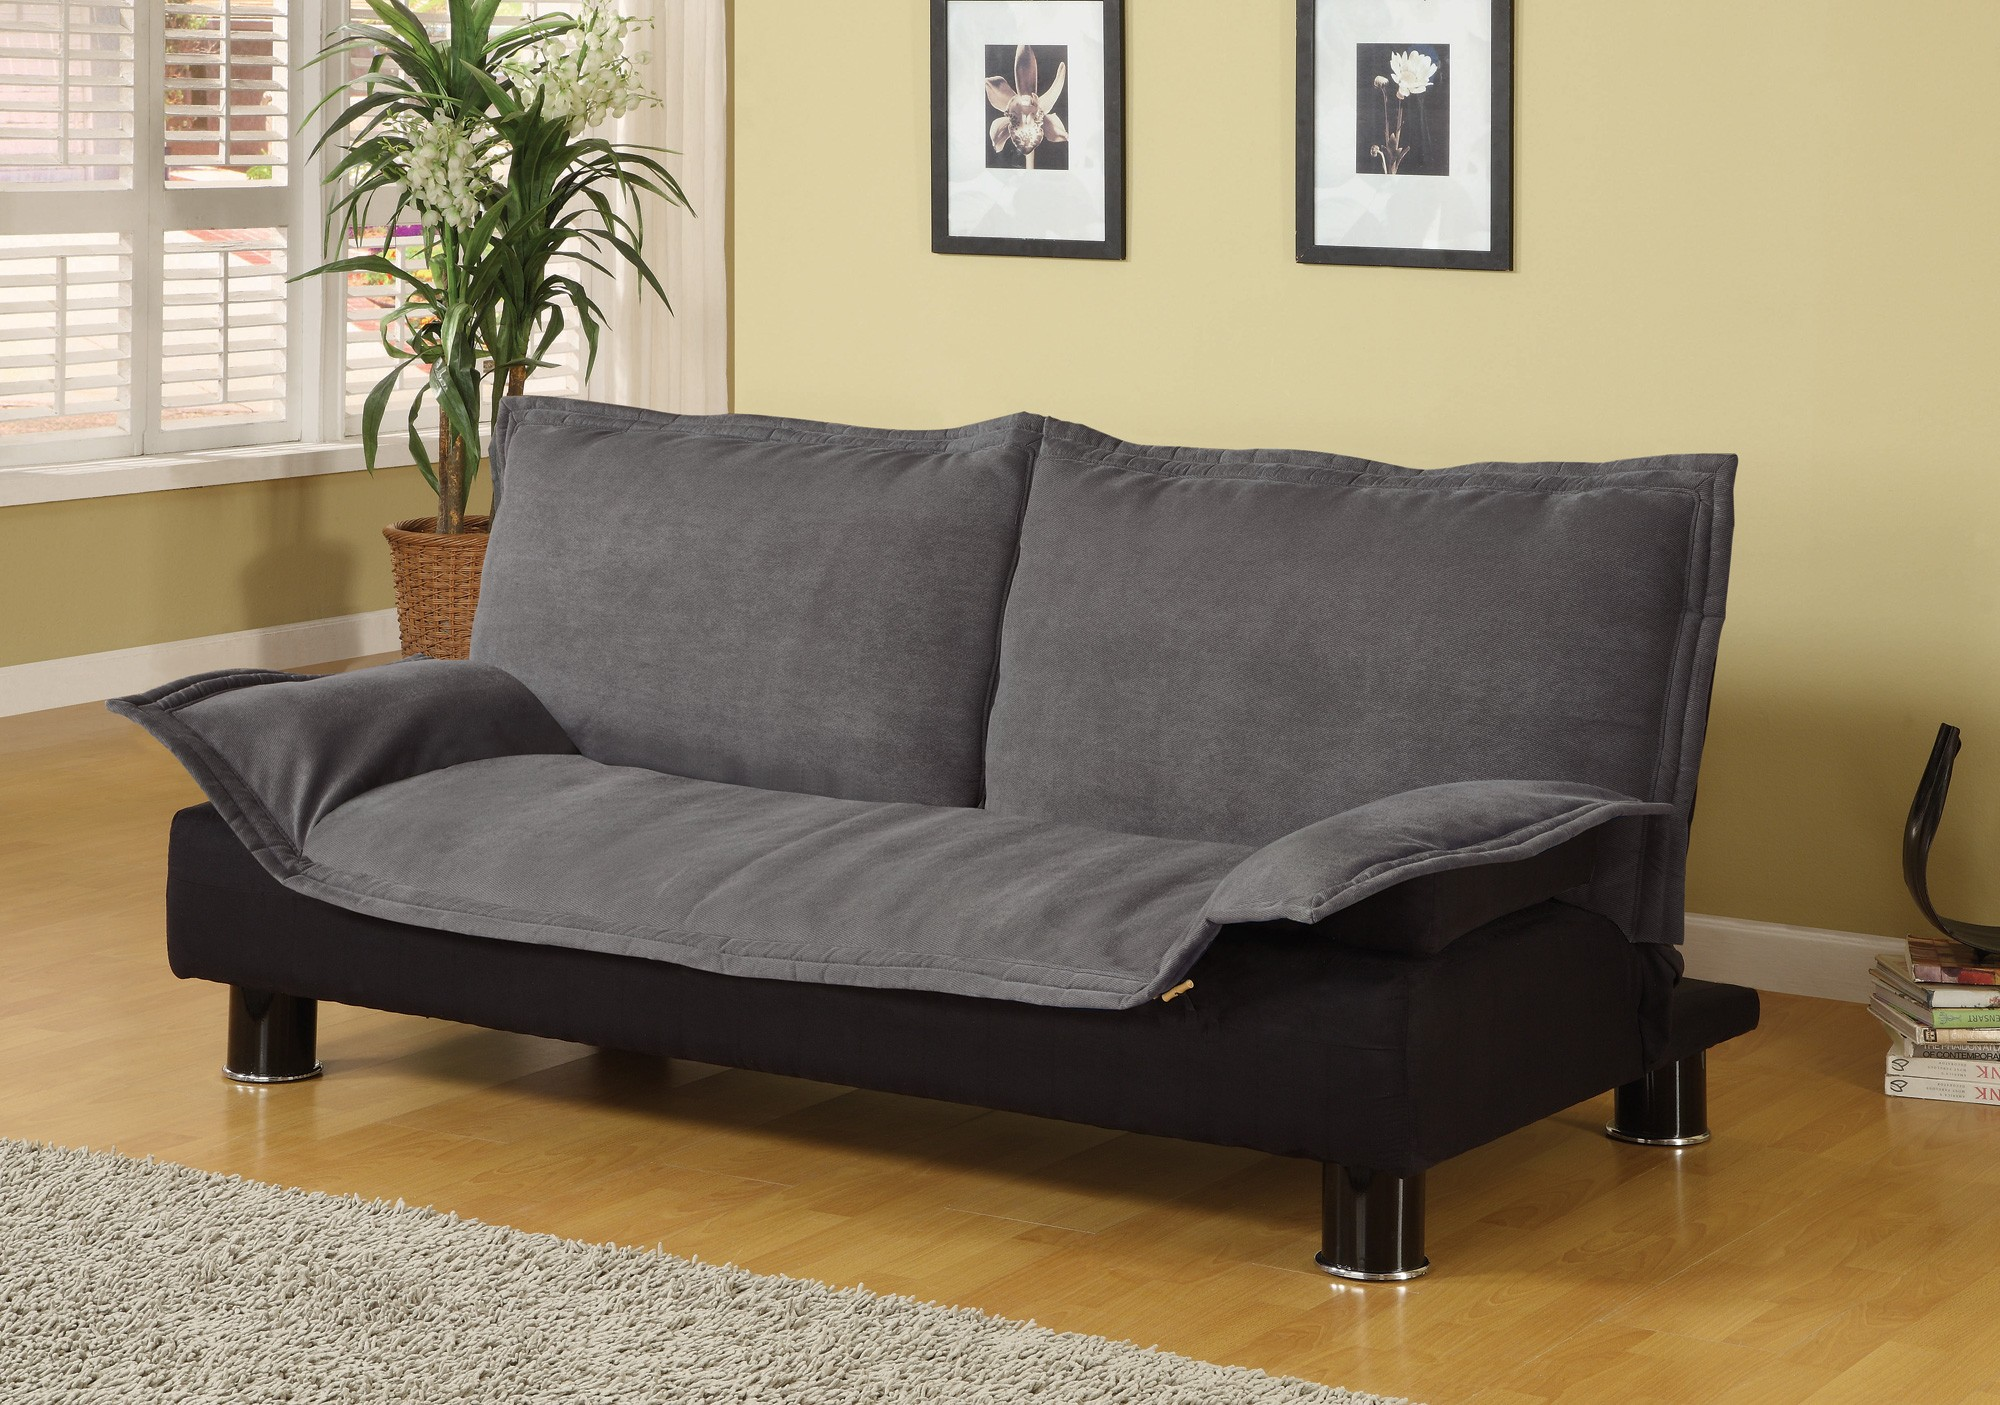 Convertible sofa bed 300177 from coaster 300177 for Divan convertible